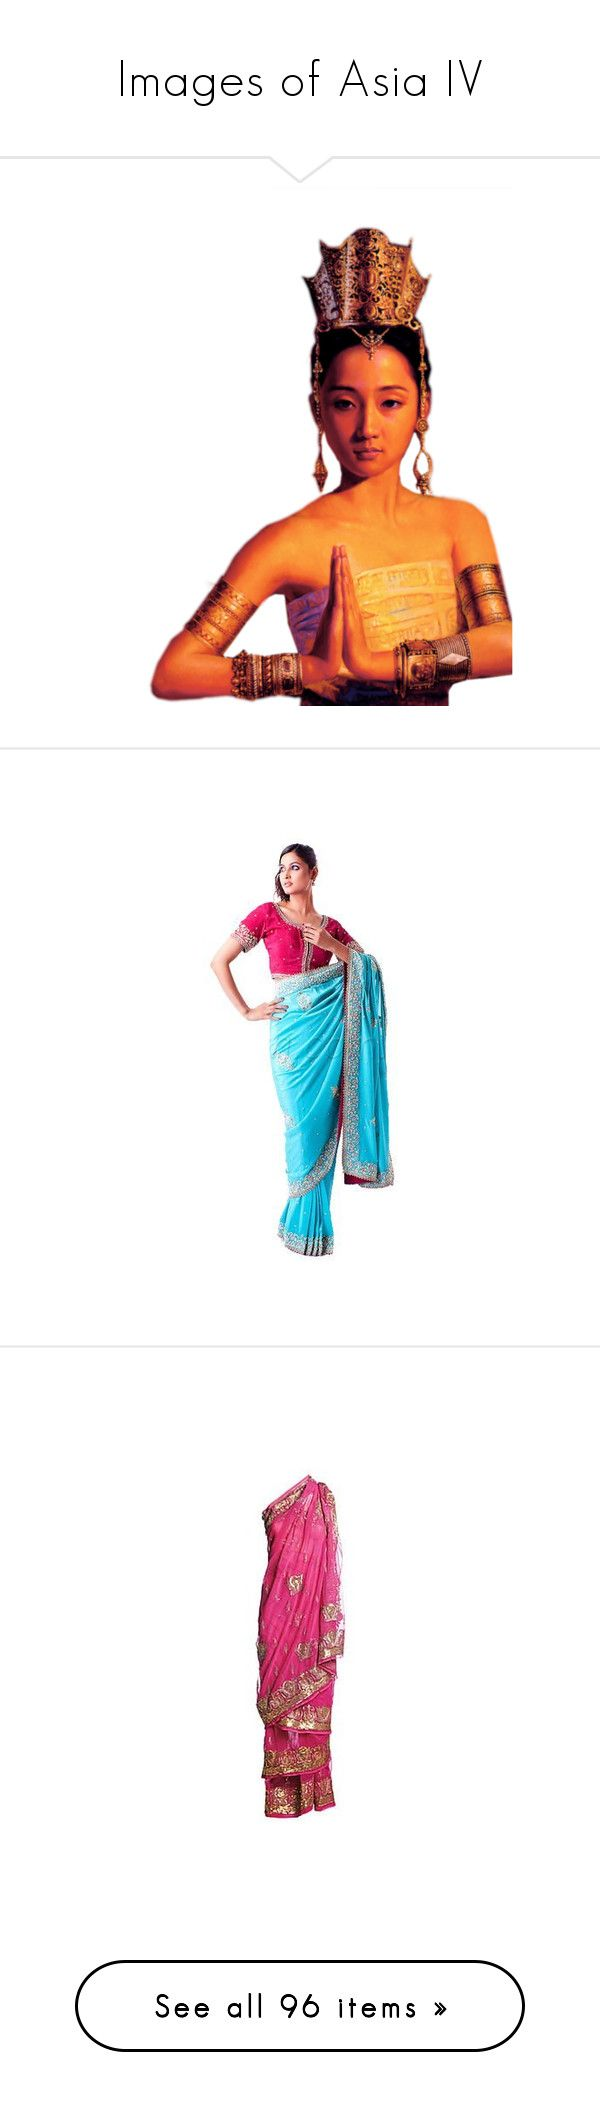 """""""Images of Asia IV"""" by kitty-t ❤ liked on Polyvore featuring india, saree, sari, lehenga, choli, people, bodies, body parts, doll parts and dolls"""